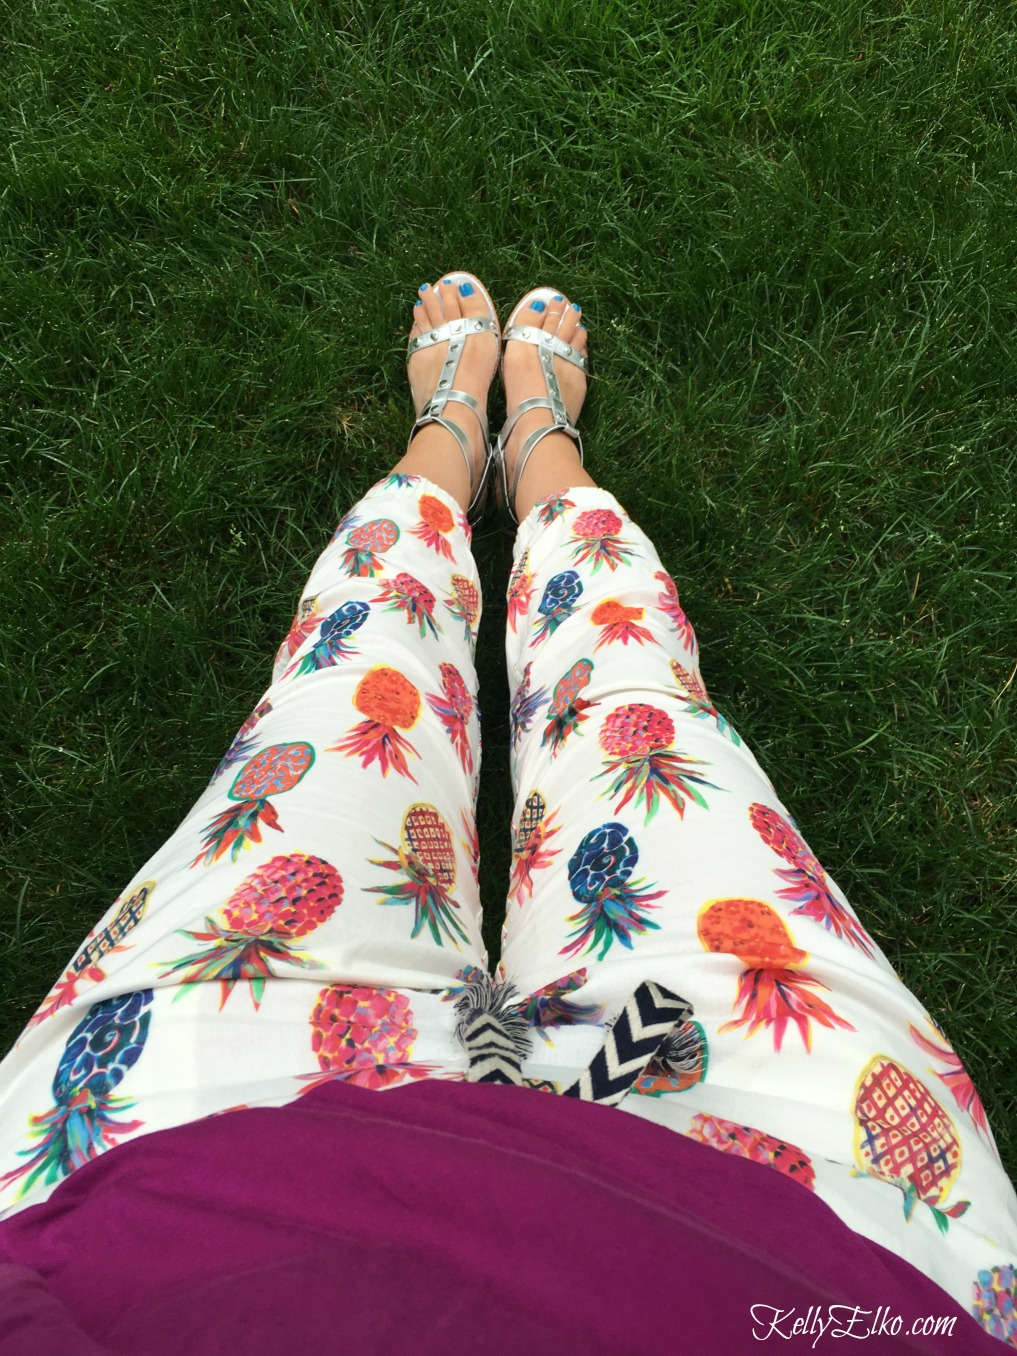 Pineapple joggers are perfect for summer - I love the fun, colorful print. Summer sale clothes 2017 kellyelko.com